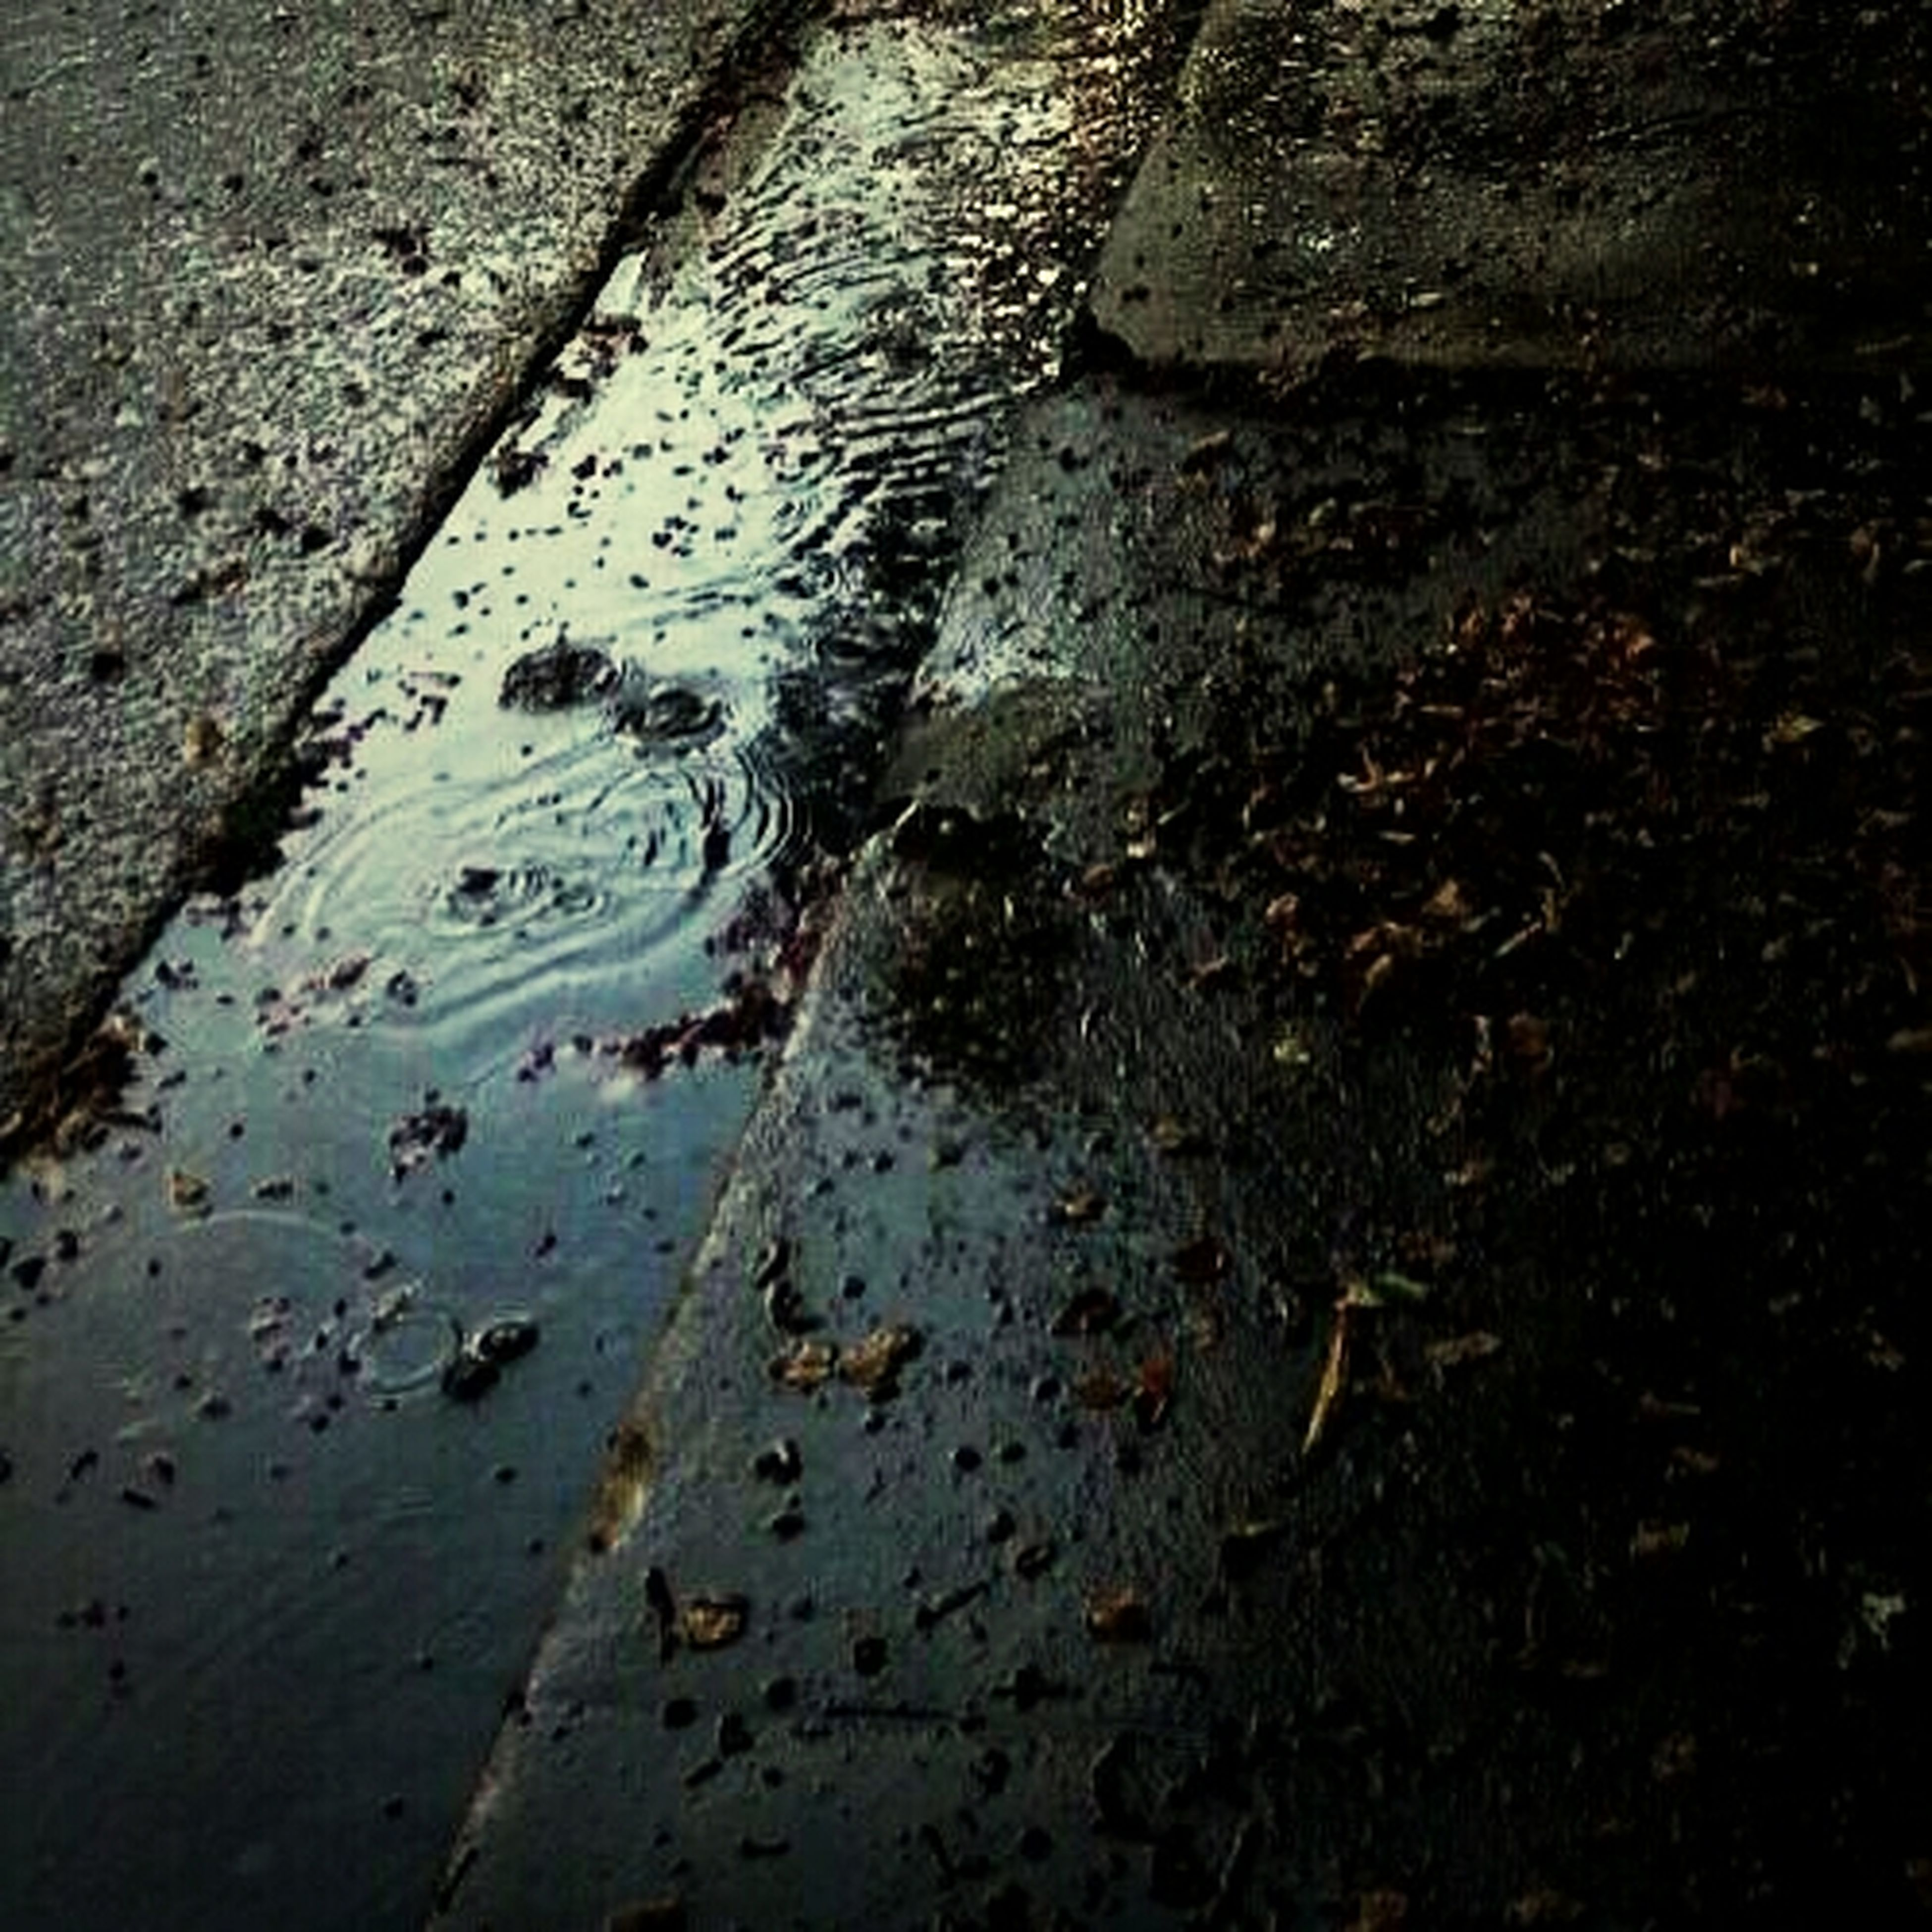 water, high angle view, wet, puddle, reflection, street, leaf, asphalt, season, rain, outdoors, day, no people, dry, nature, falling, transportation, road, fallen, autumn